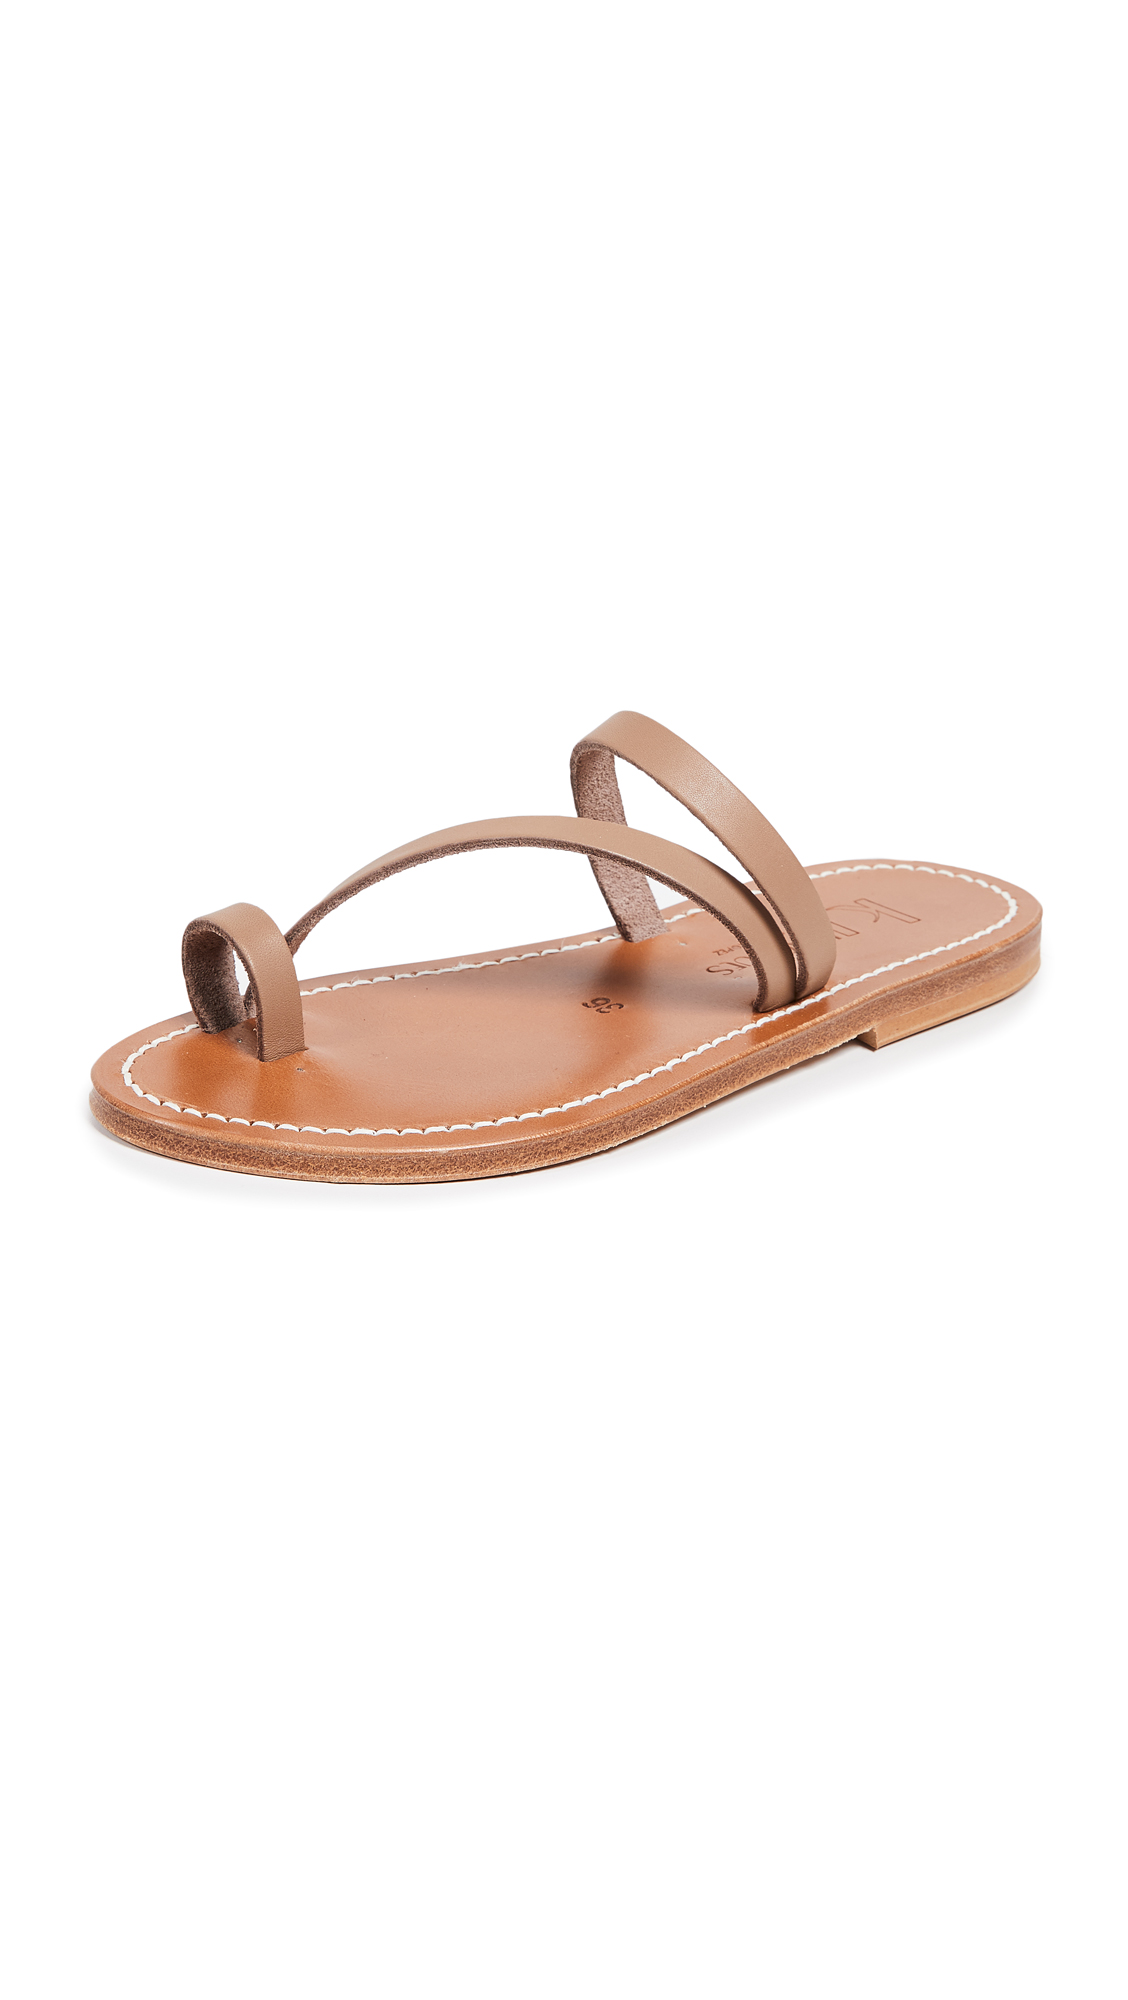 K. Jacques Actium Toe Ring Sandals - Pul Taupe